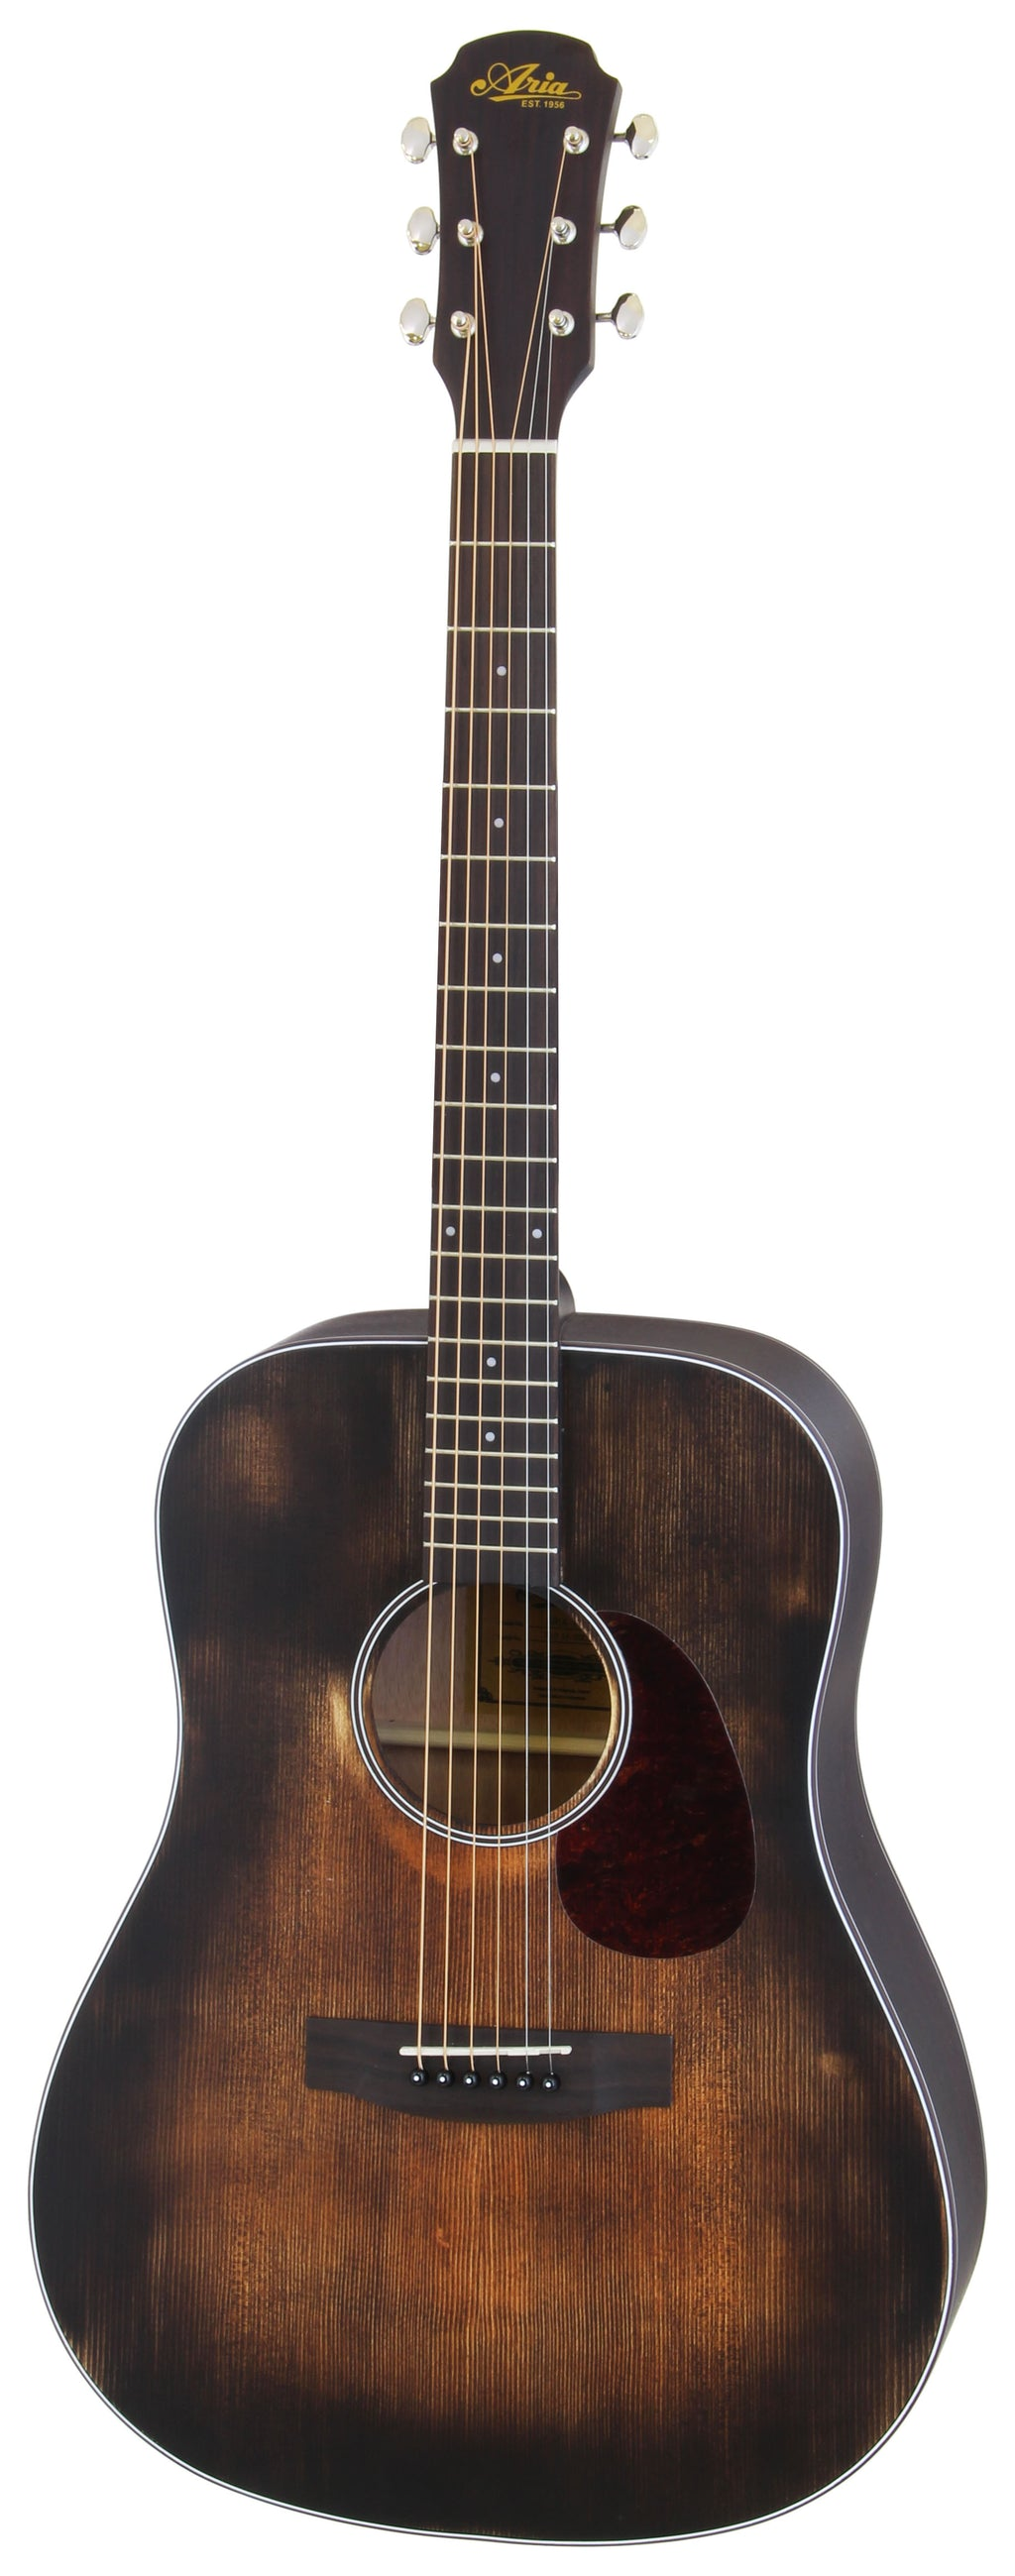 ARIA-111 DP Dreadnought Delta Player Series - Aria Muzic